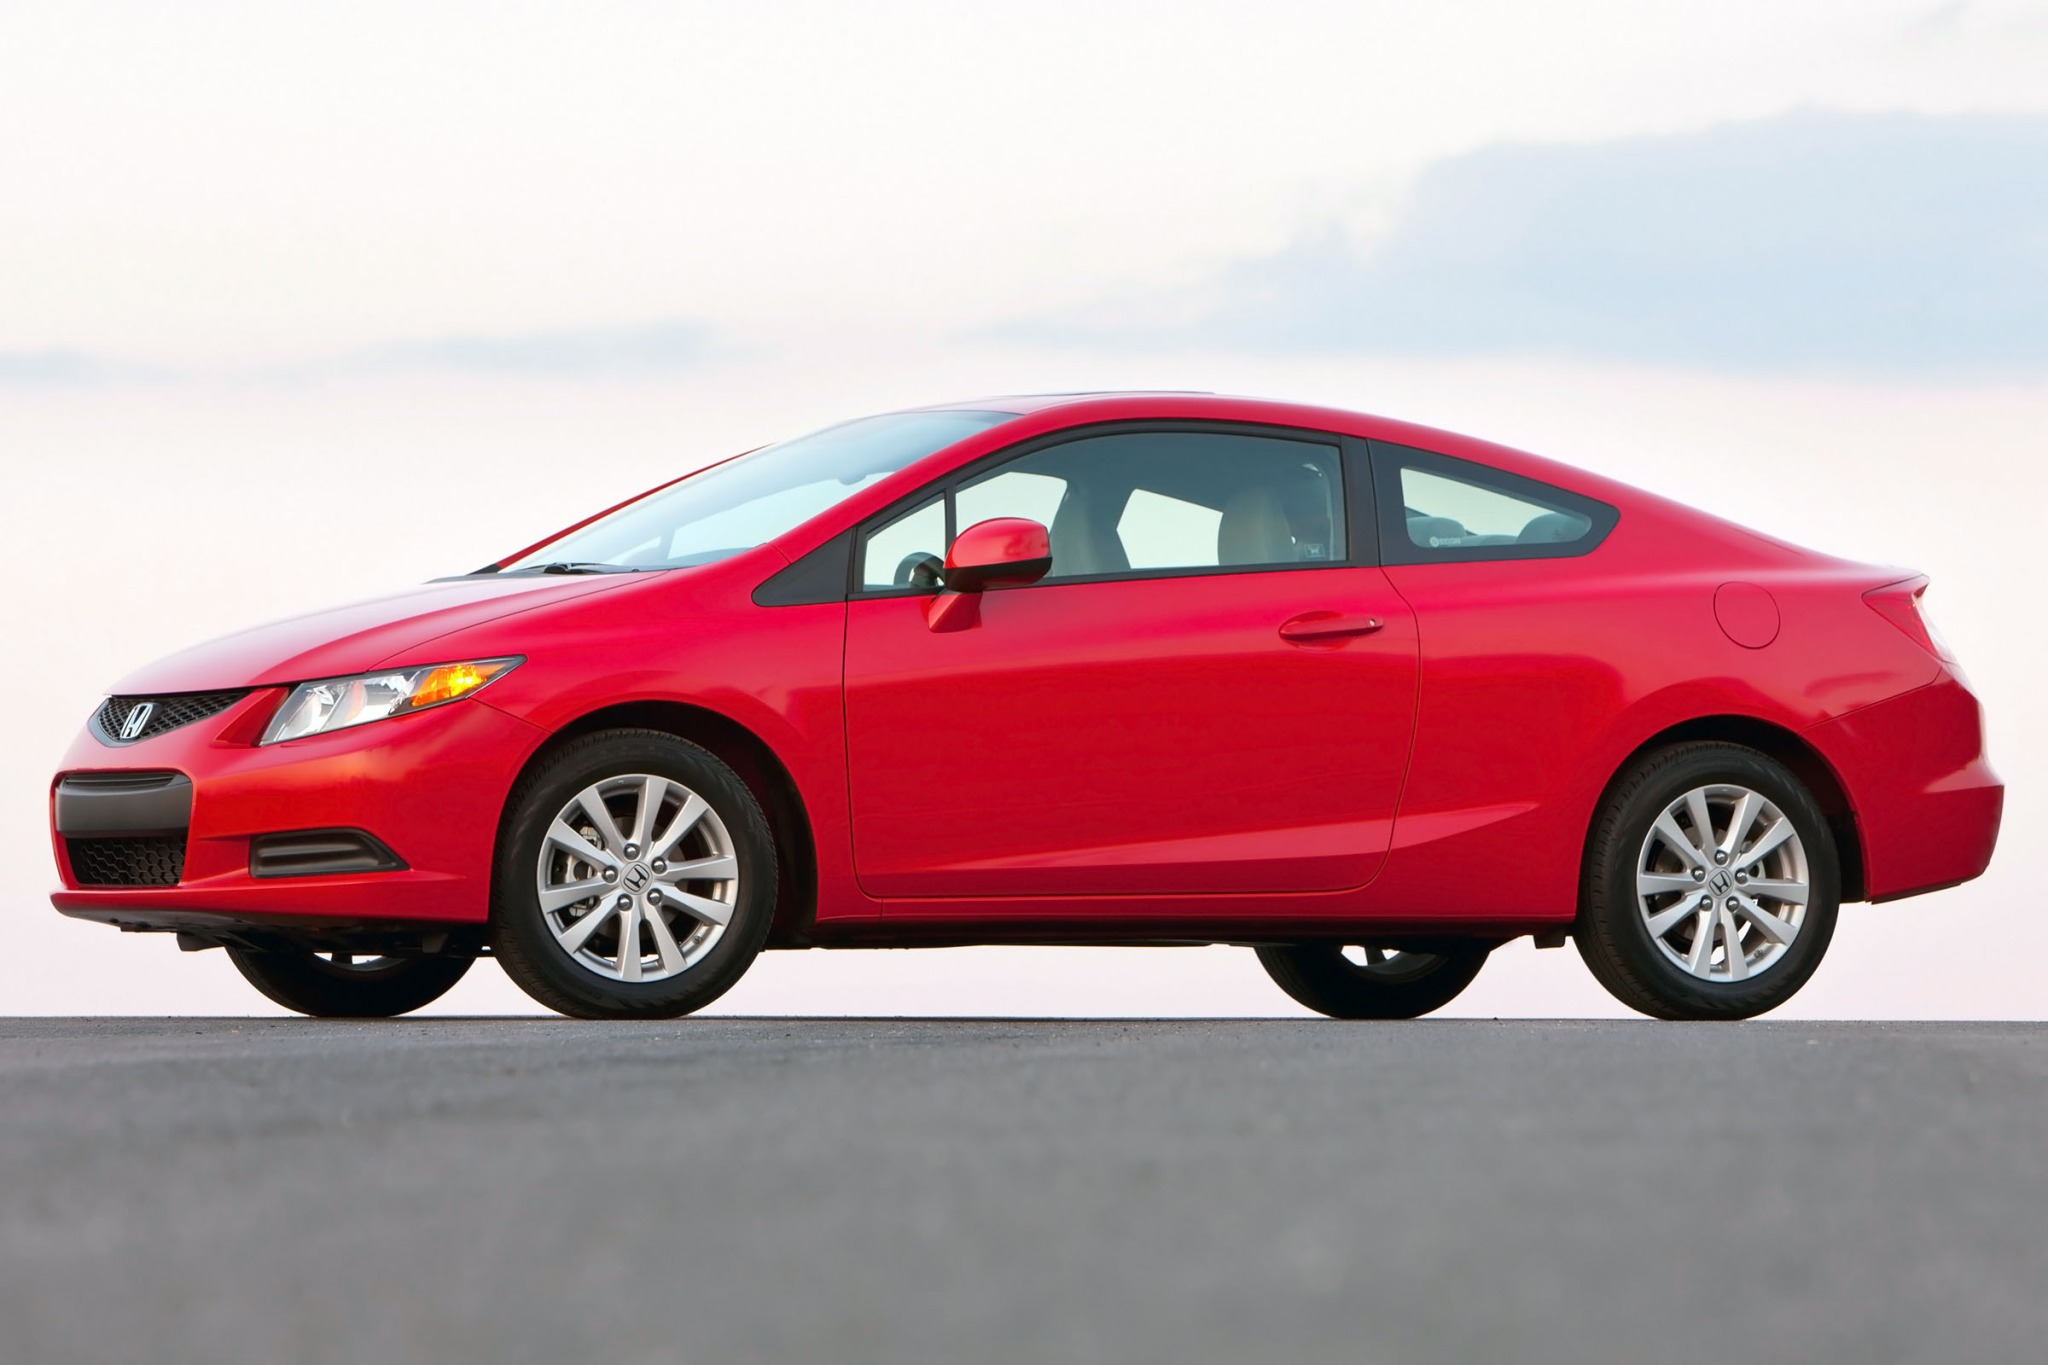 2012 Honda Civic Si Coupe exterior #1